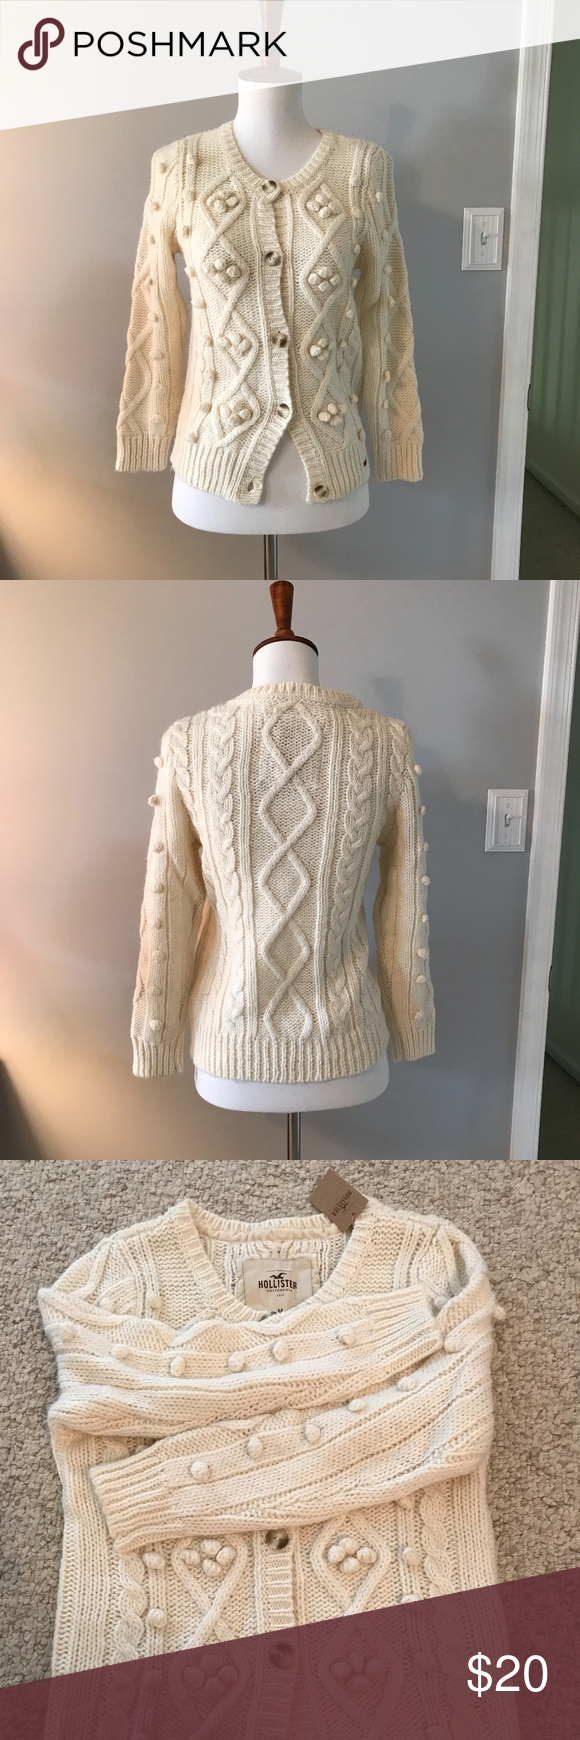 Hollister cardigan *nwt* nwt | Hollister, Customer support and ...